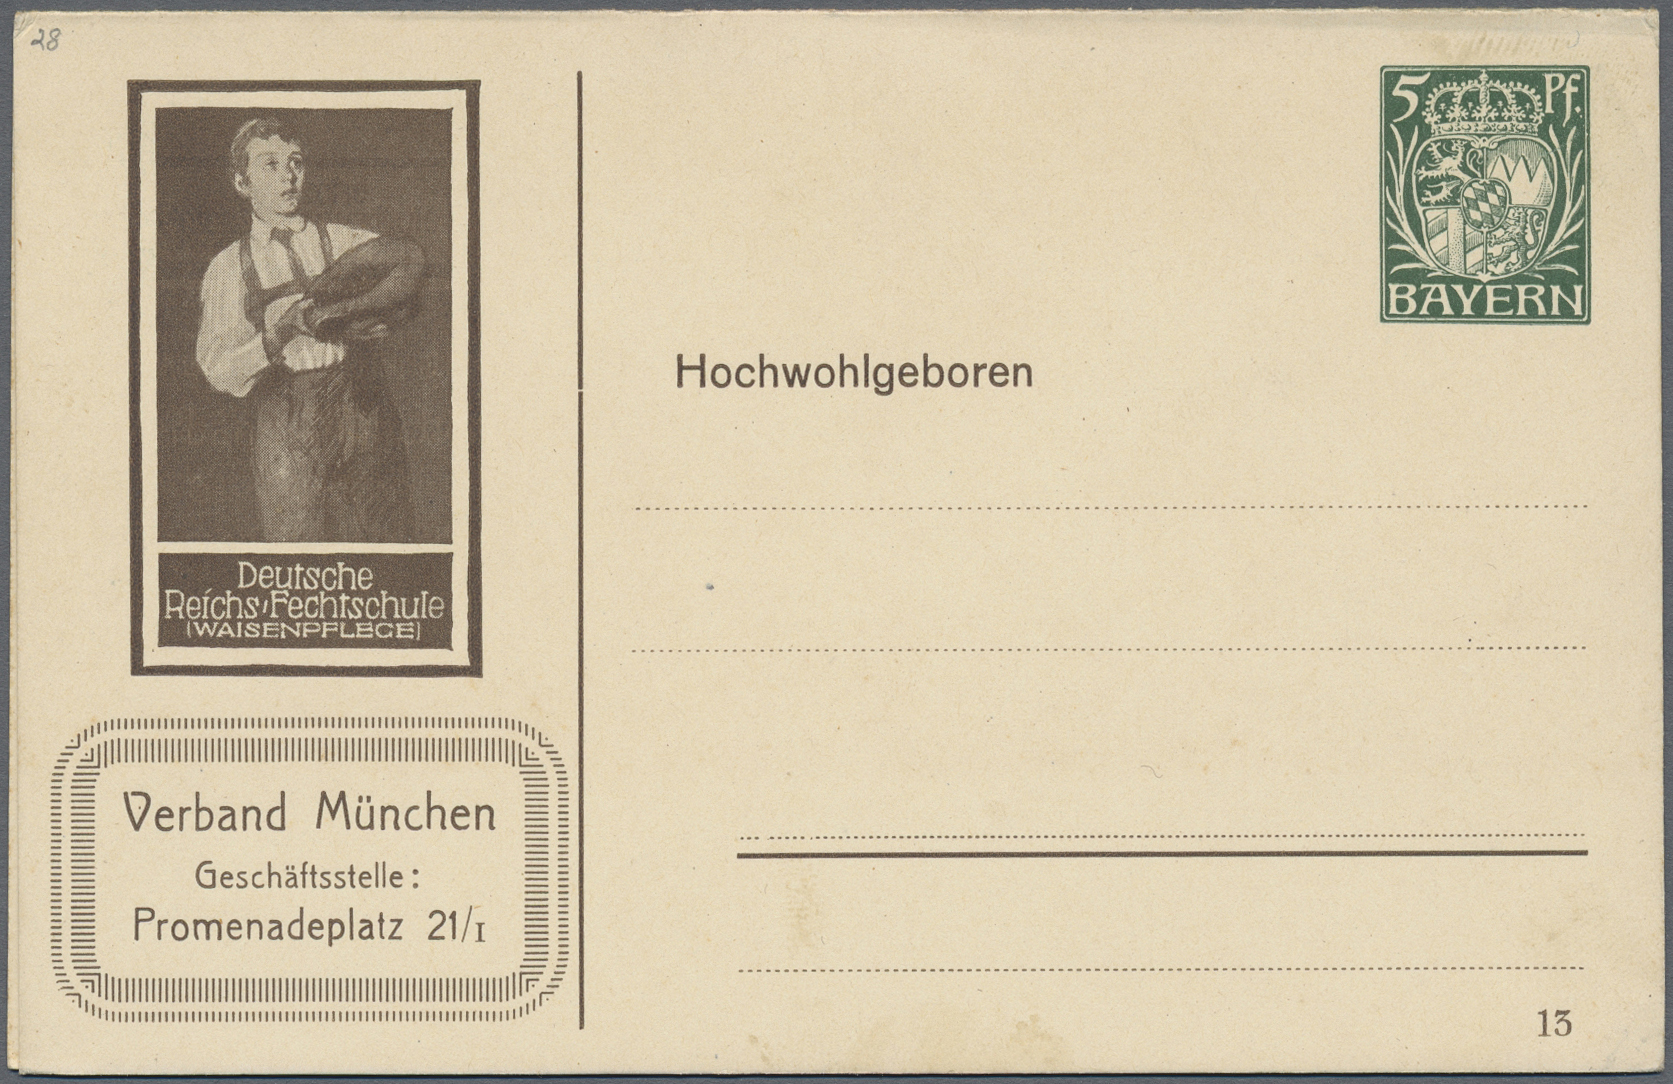 Lot 28005 - deutschland  -  Auktionshaus Christoph Gärtner GmbH & Co. KG Sale #46 Gollcetions Germany - including the suplement